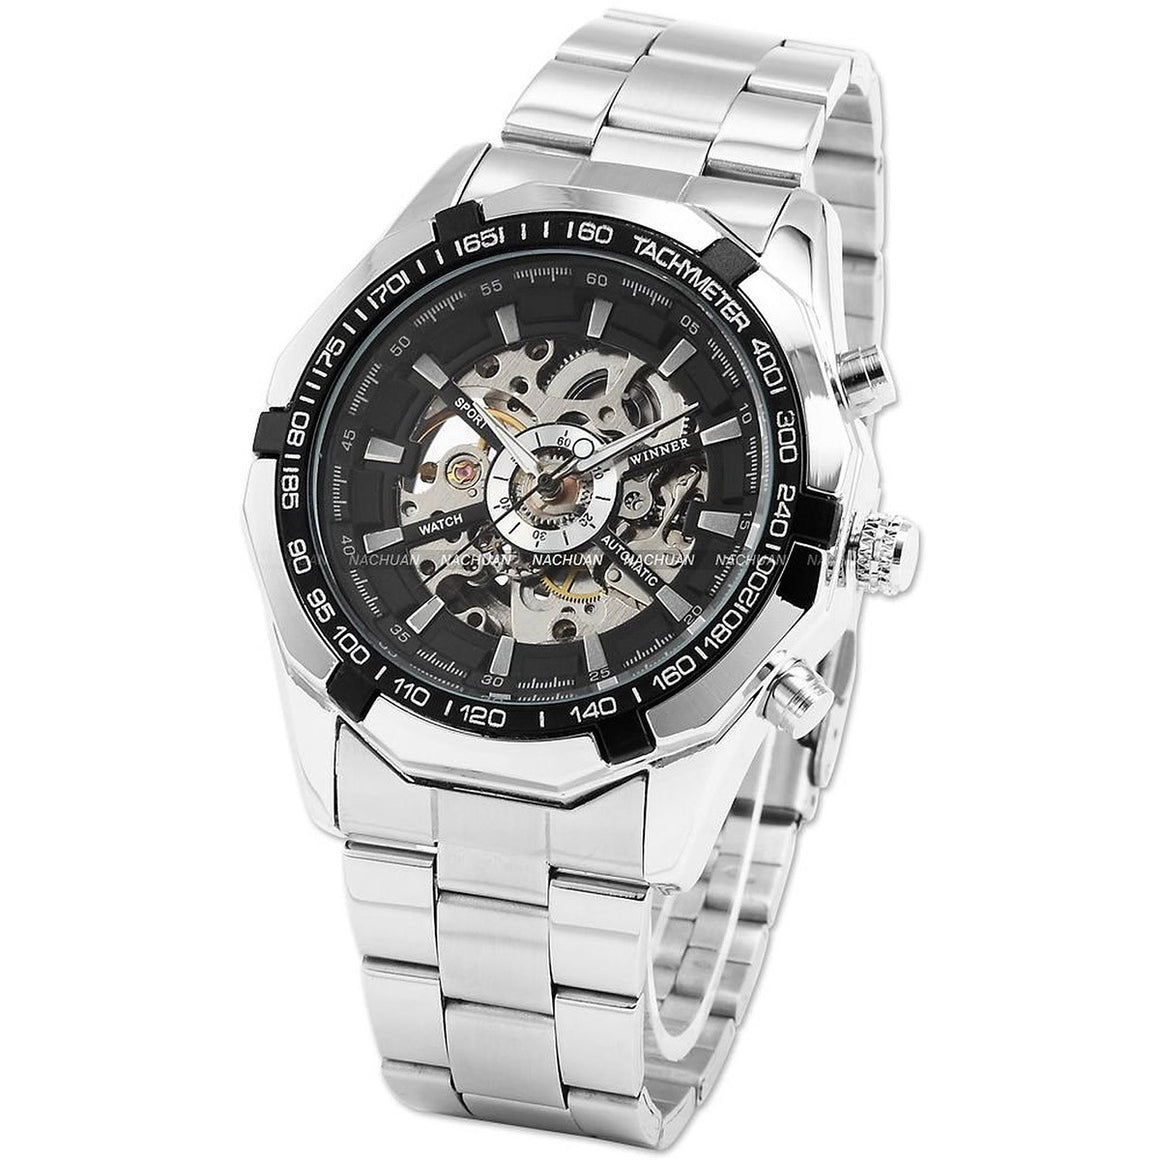 WINNER 099 Vintage Round Skeleton Dial Stainless Steel Band Men's Automatic Mechanical Wrist Watch  - handwristband